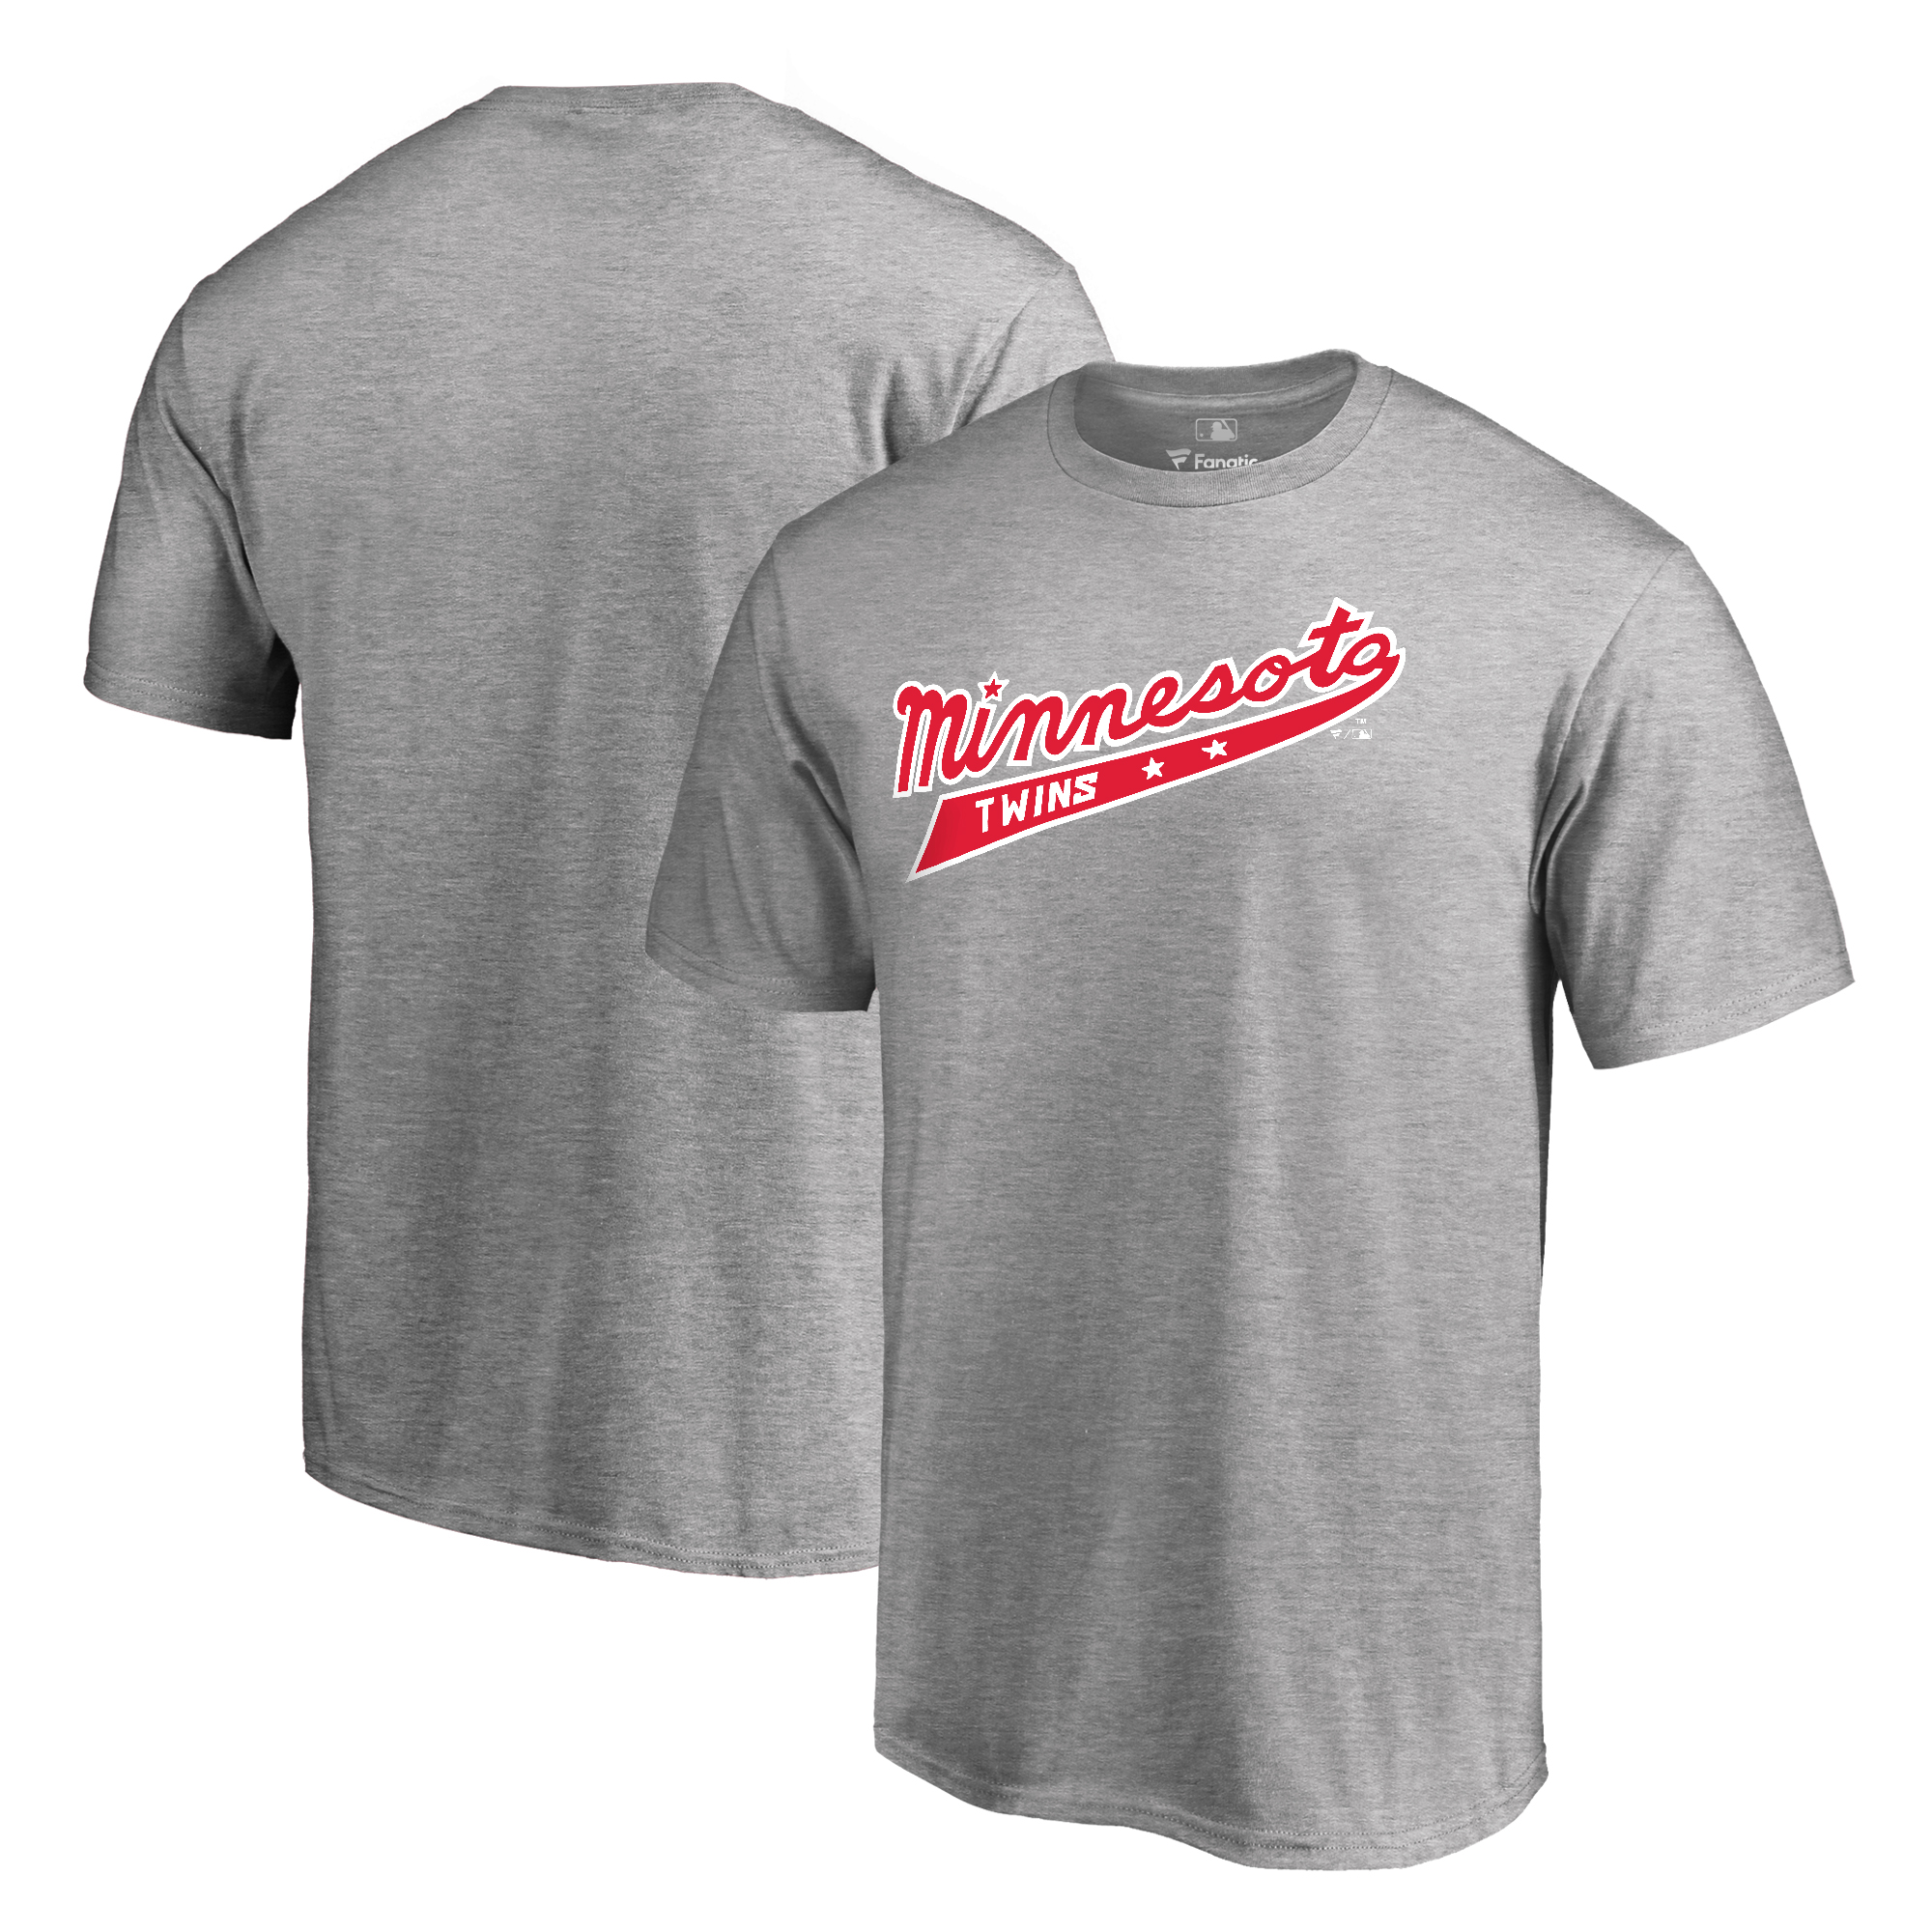 Minnesota Twins Fanatics Branded Cooperstown Collection Forbes T-Shirt - Ash